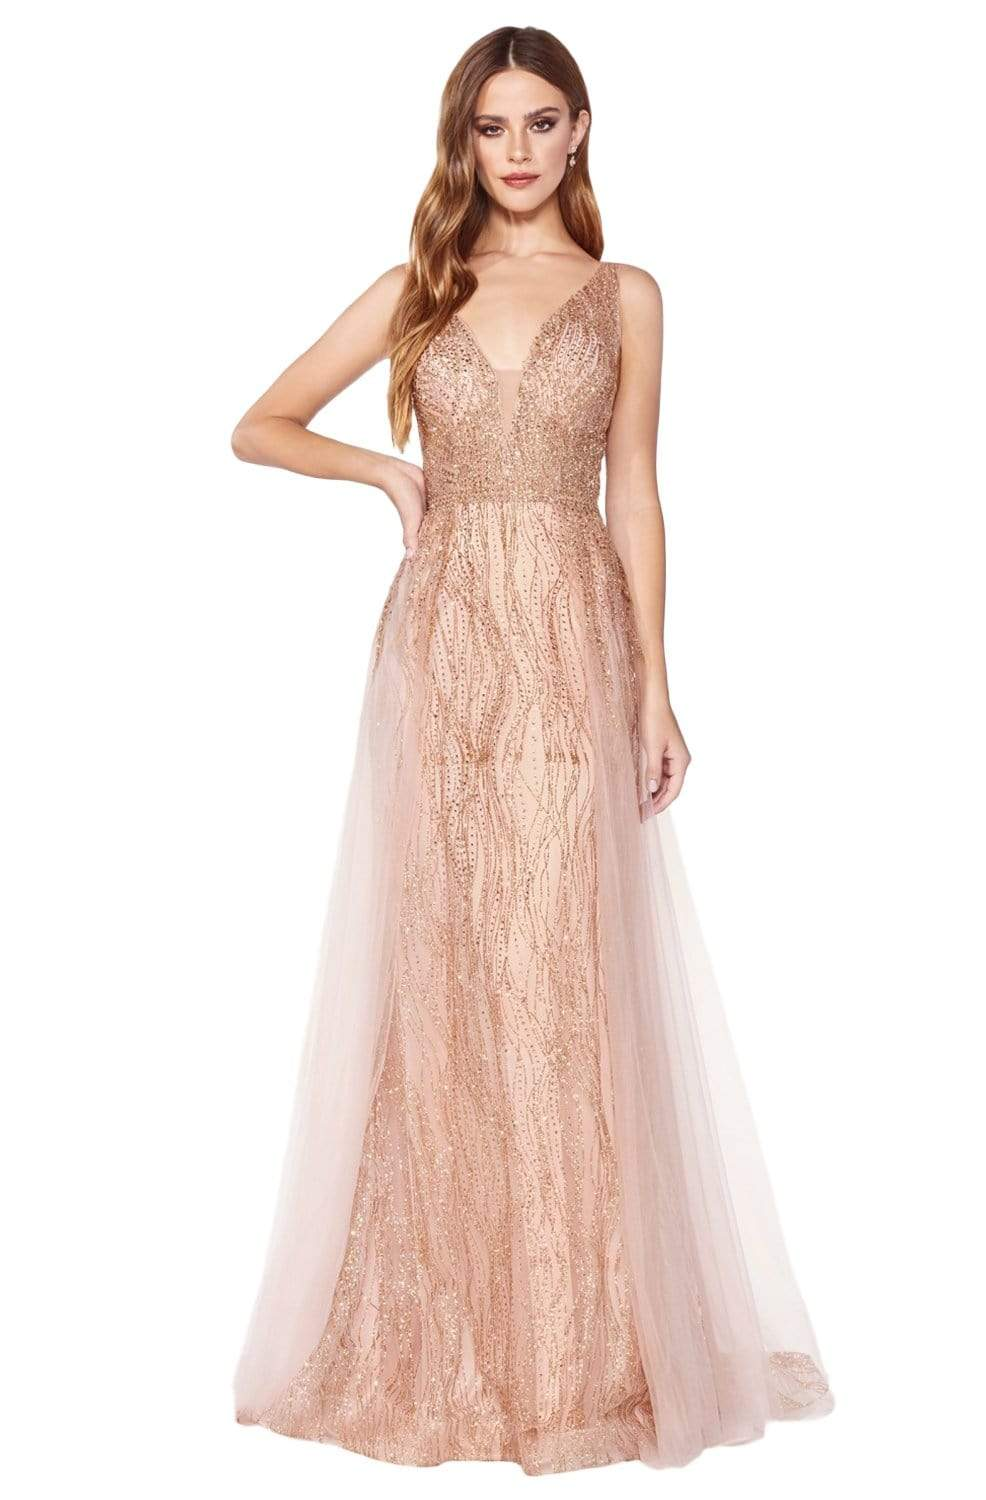 Cinderella Divine - CD0152 Deep V-neck Glitter Tulle A-line Dress In Pink